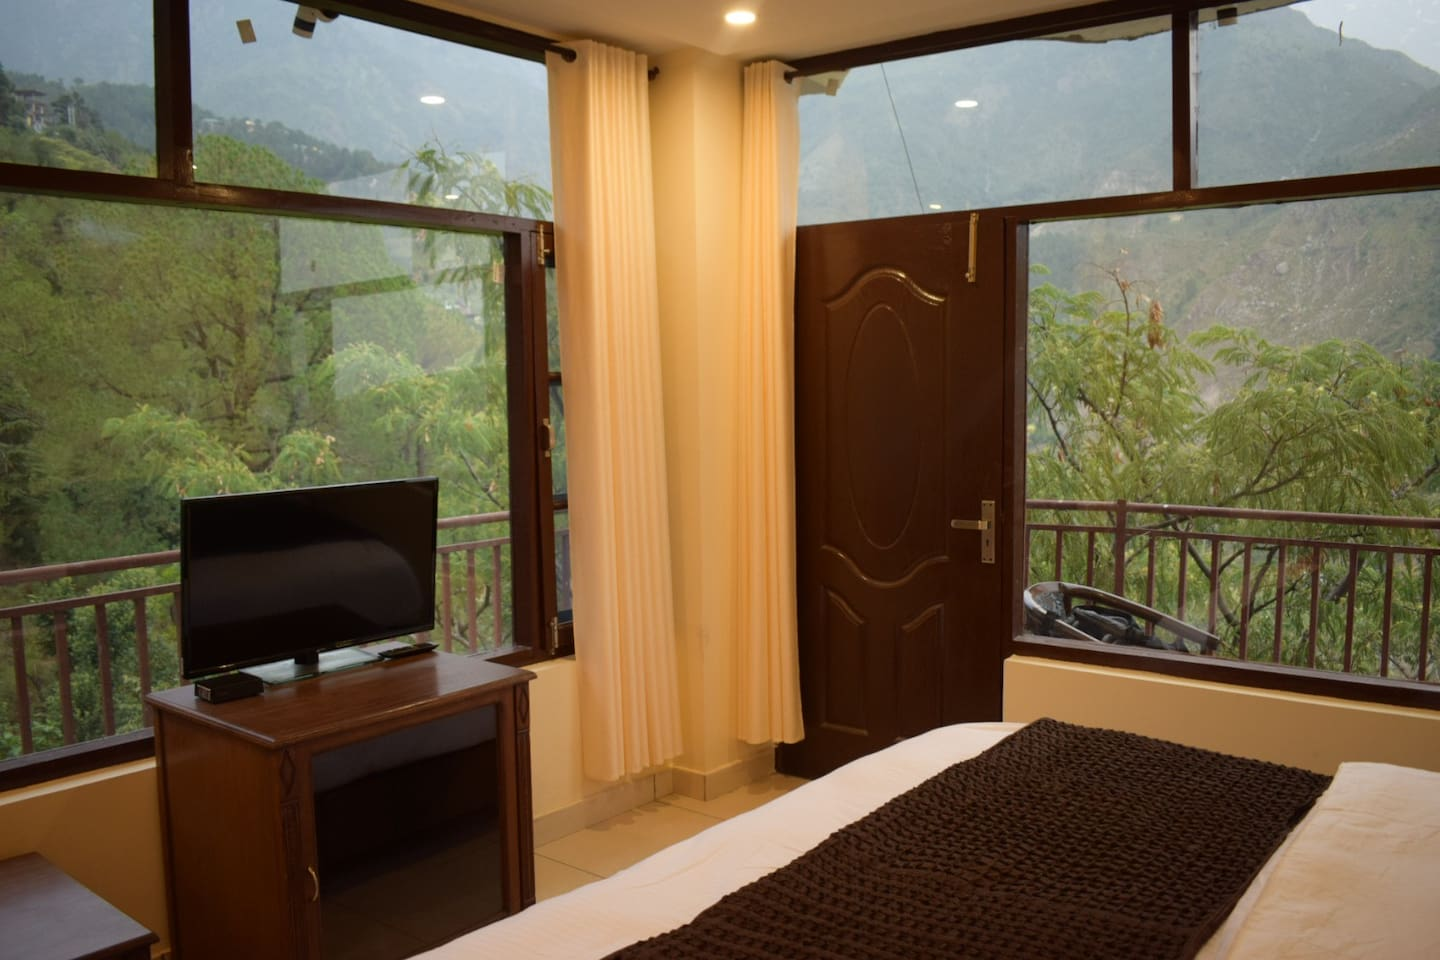 """The rooms give a view into the breathtaking valley and the Himalayan mountains. The location is some 10 -15 mins walk to His Holyness the Dalai Lama's Temple in McLeodGanj and just behind the cozy hipster café """" Illiterati""""."""